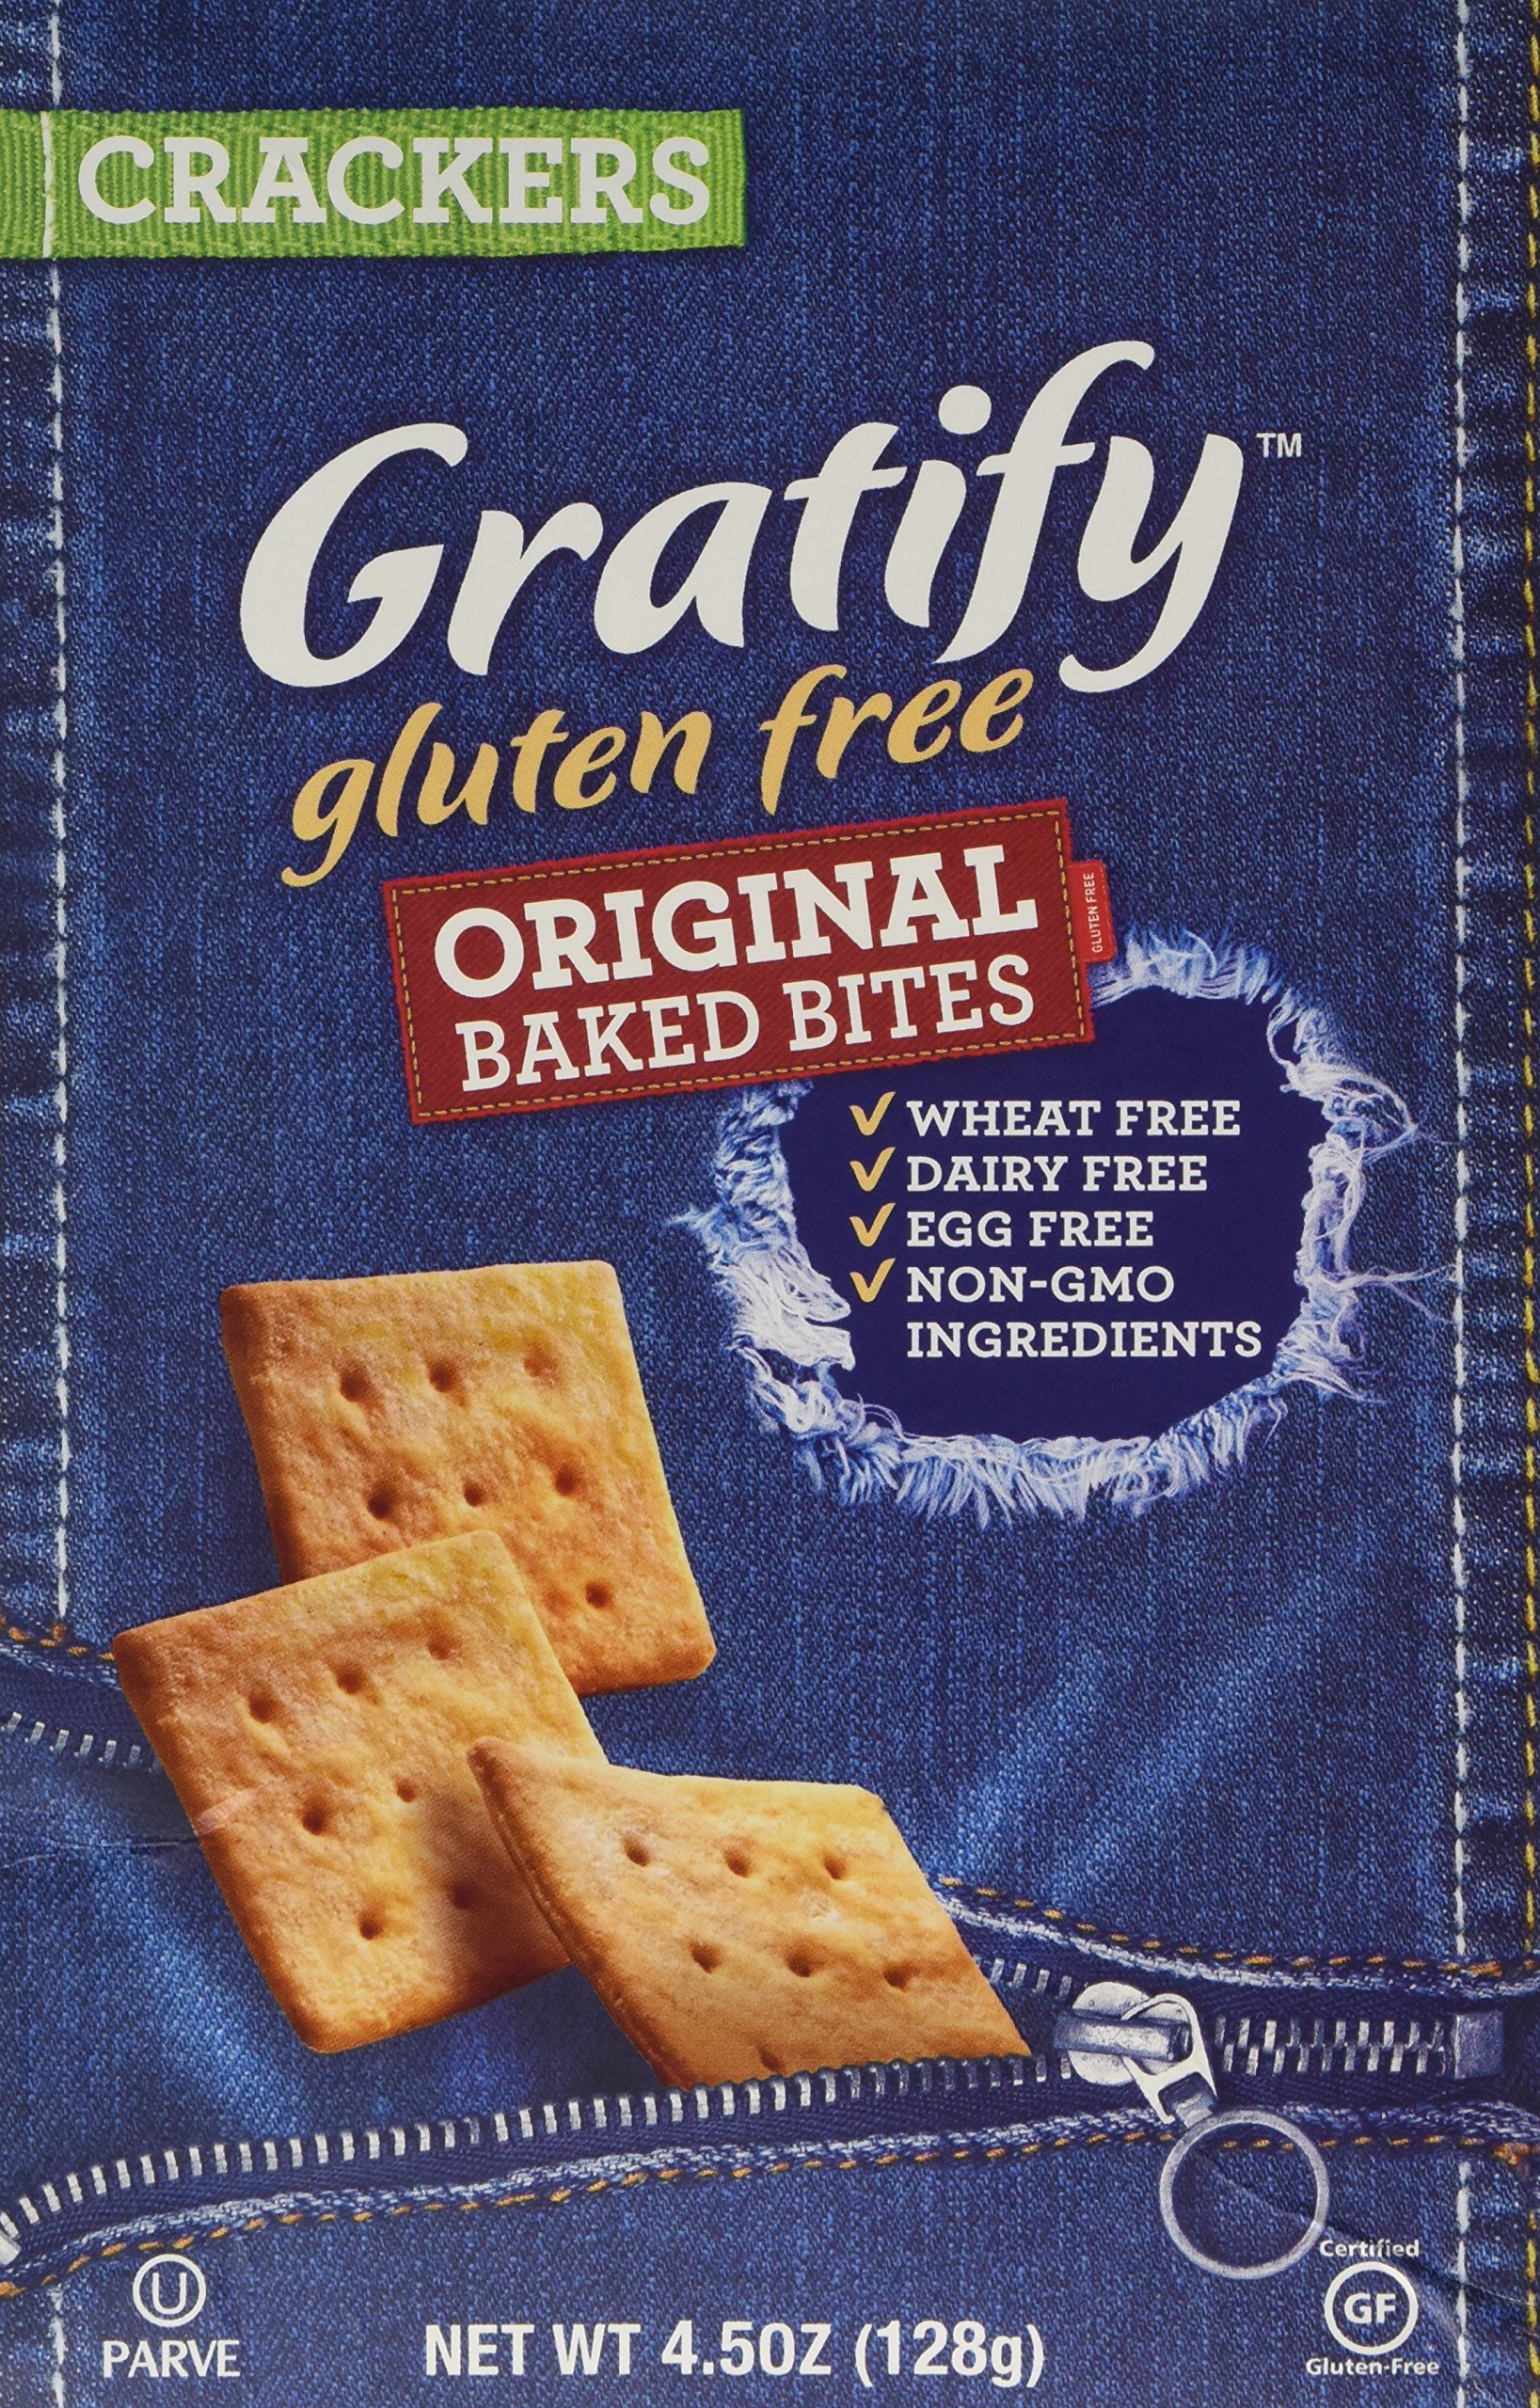 Gratify Gluten Free Crackers Bites Original Flavor Crispy Baked Vegan GF Snacks, 4.5oz Bag (Pack of 12) by Gratify